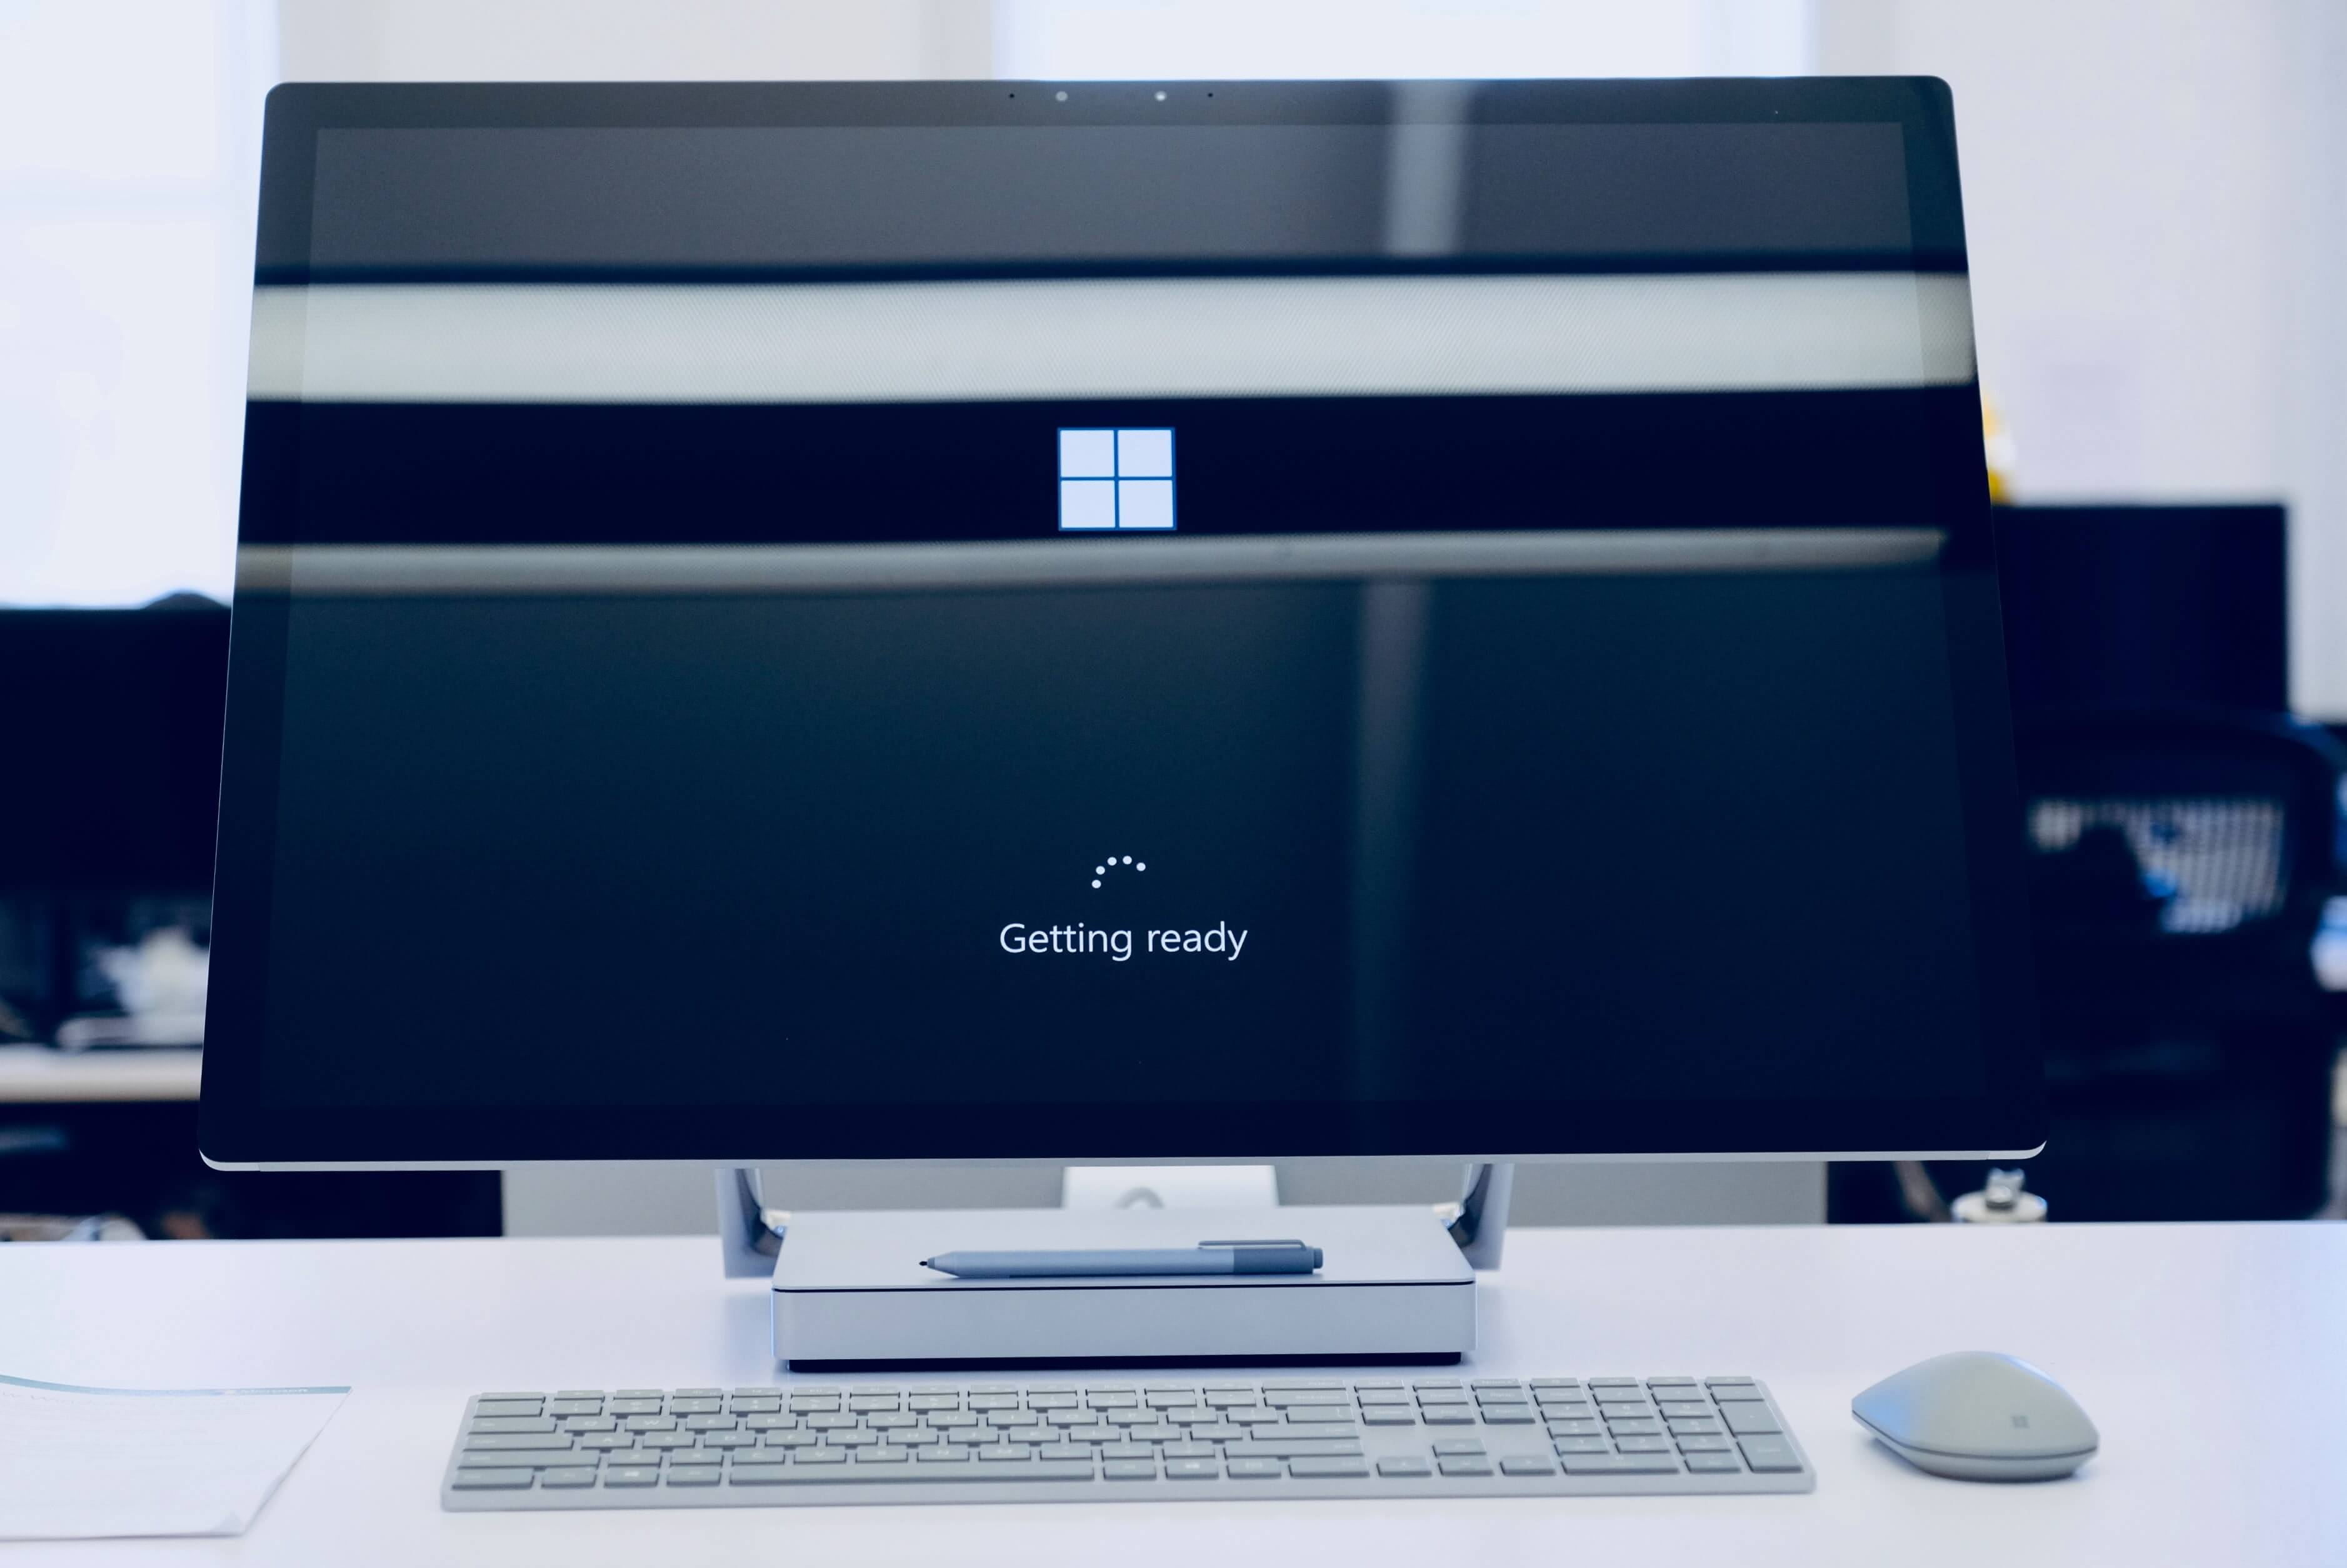 Microsoft's Project Reunion widens Windows 10 opportunity to one billion devices